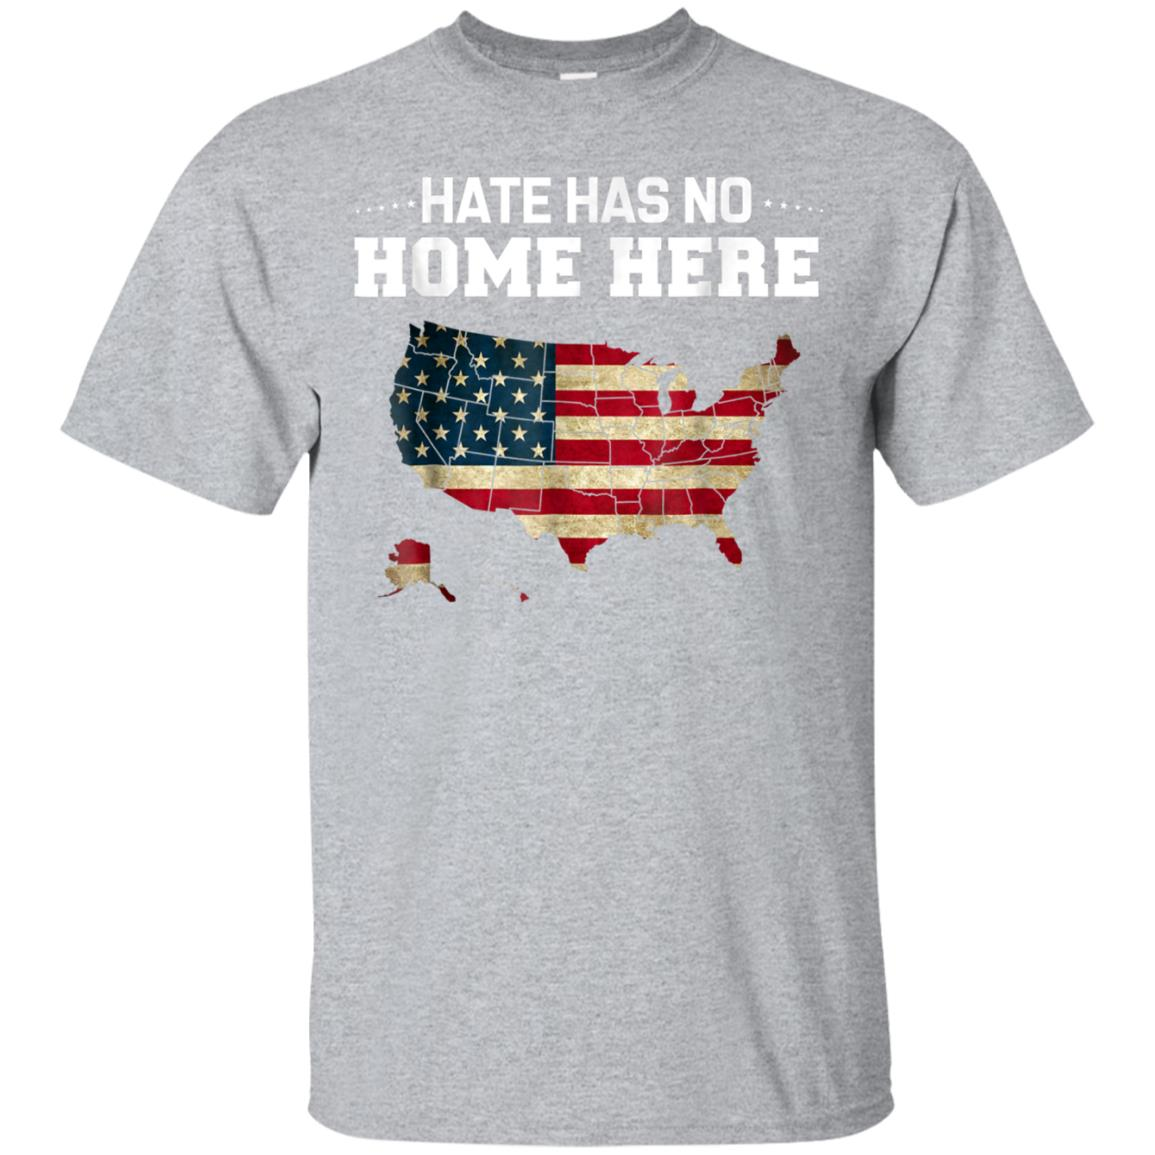 Hate Has No Home Here T-Shirt 99promocode